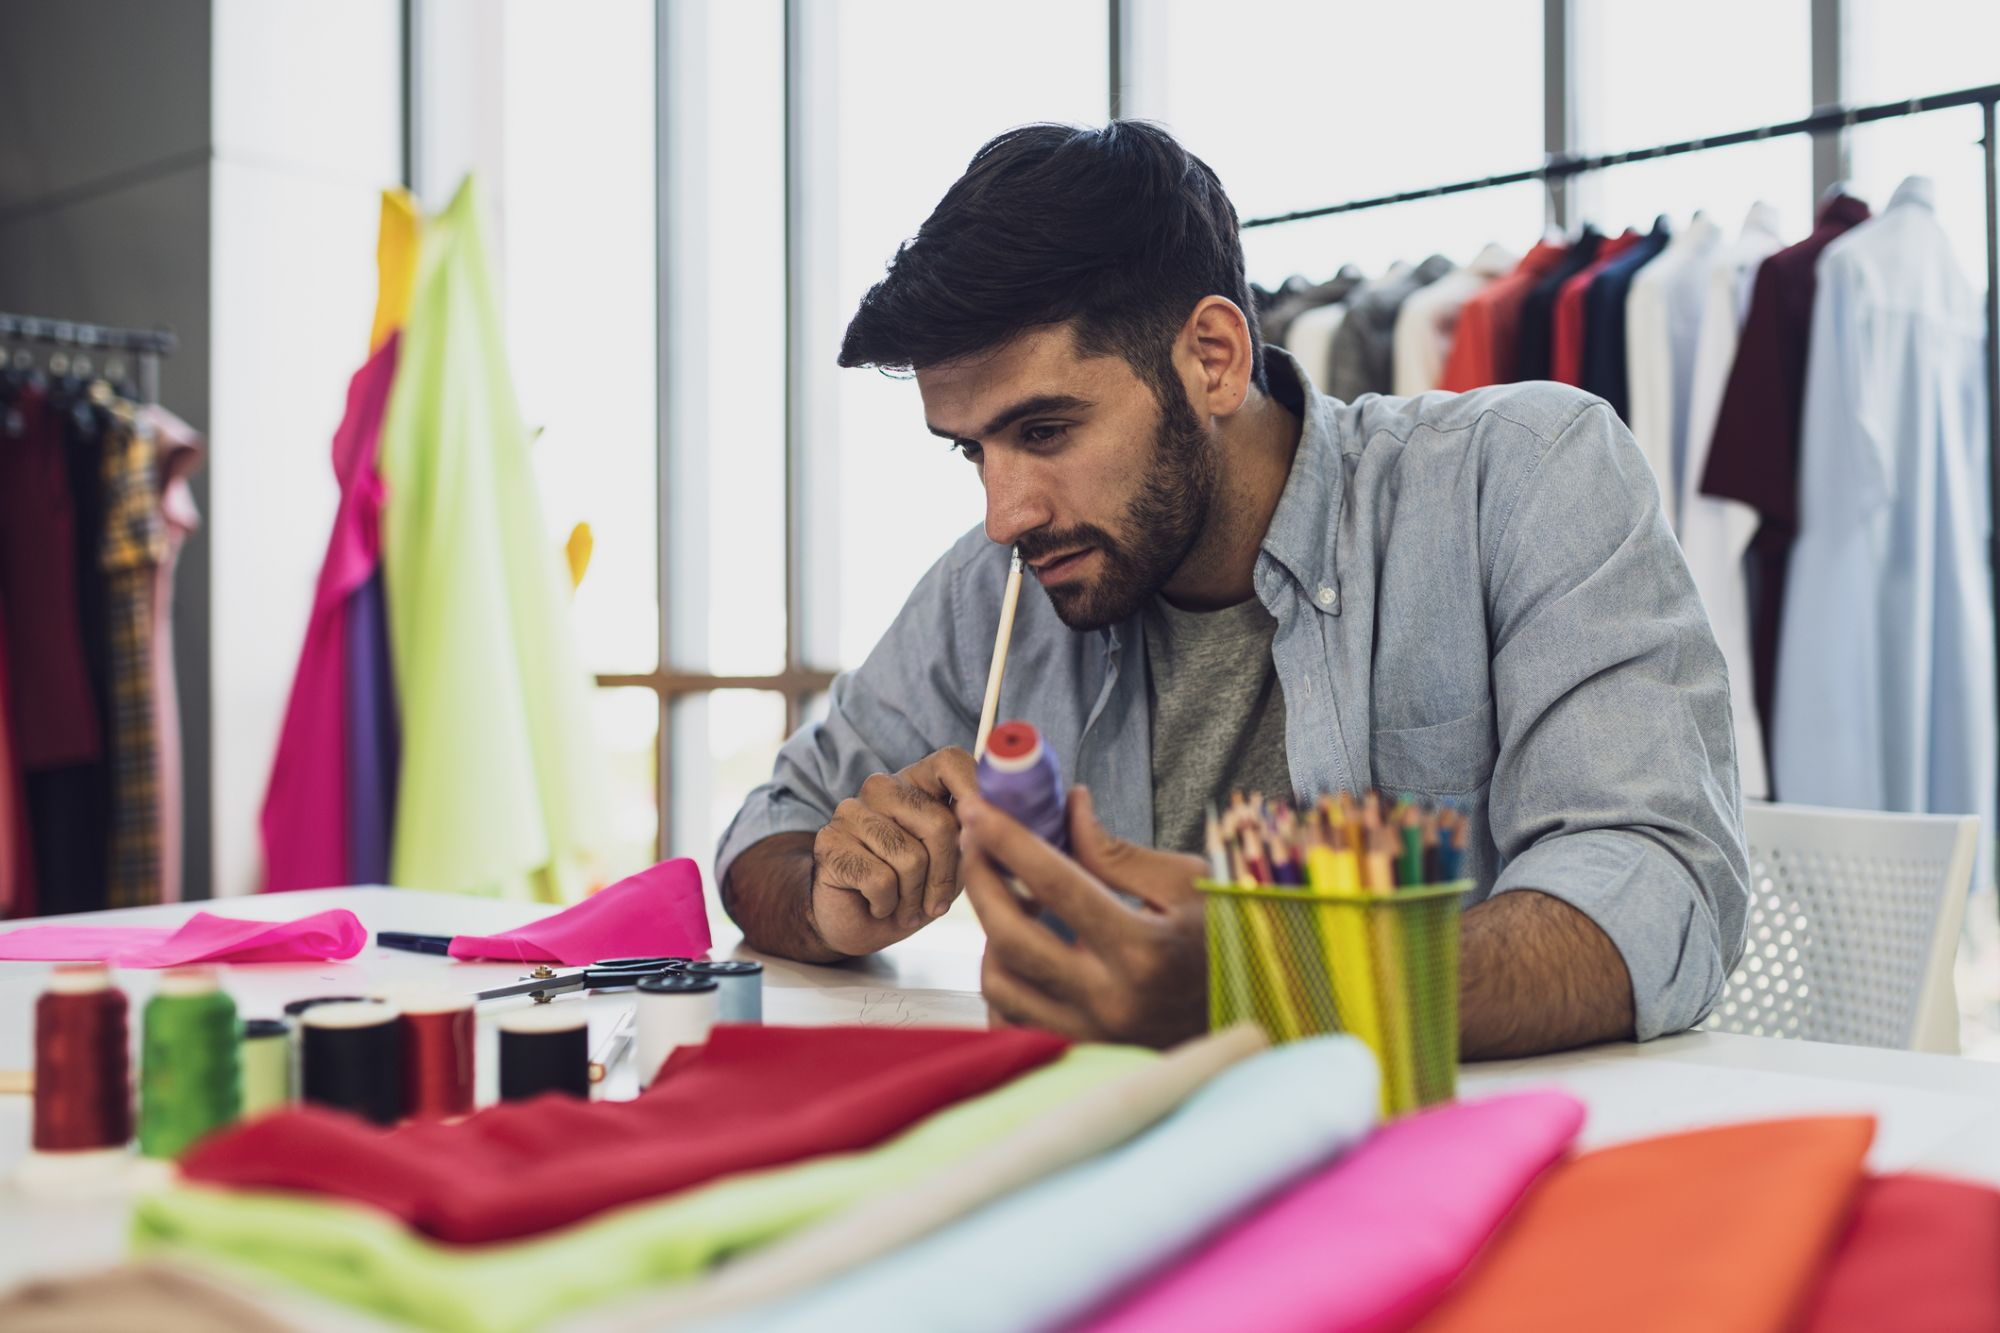 3 Innovations That Could Radically Change the Fashion Industry